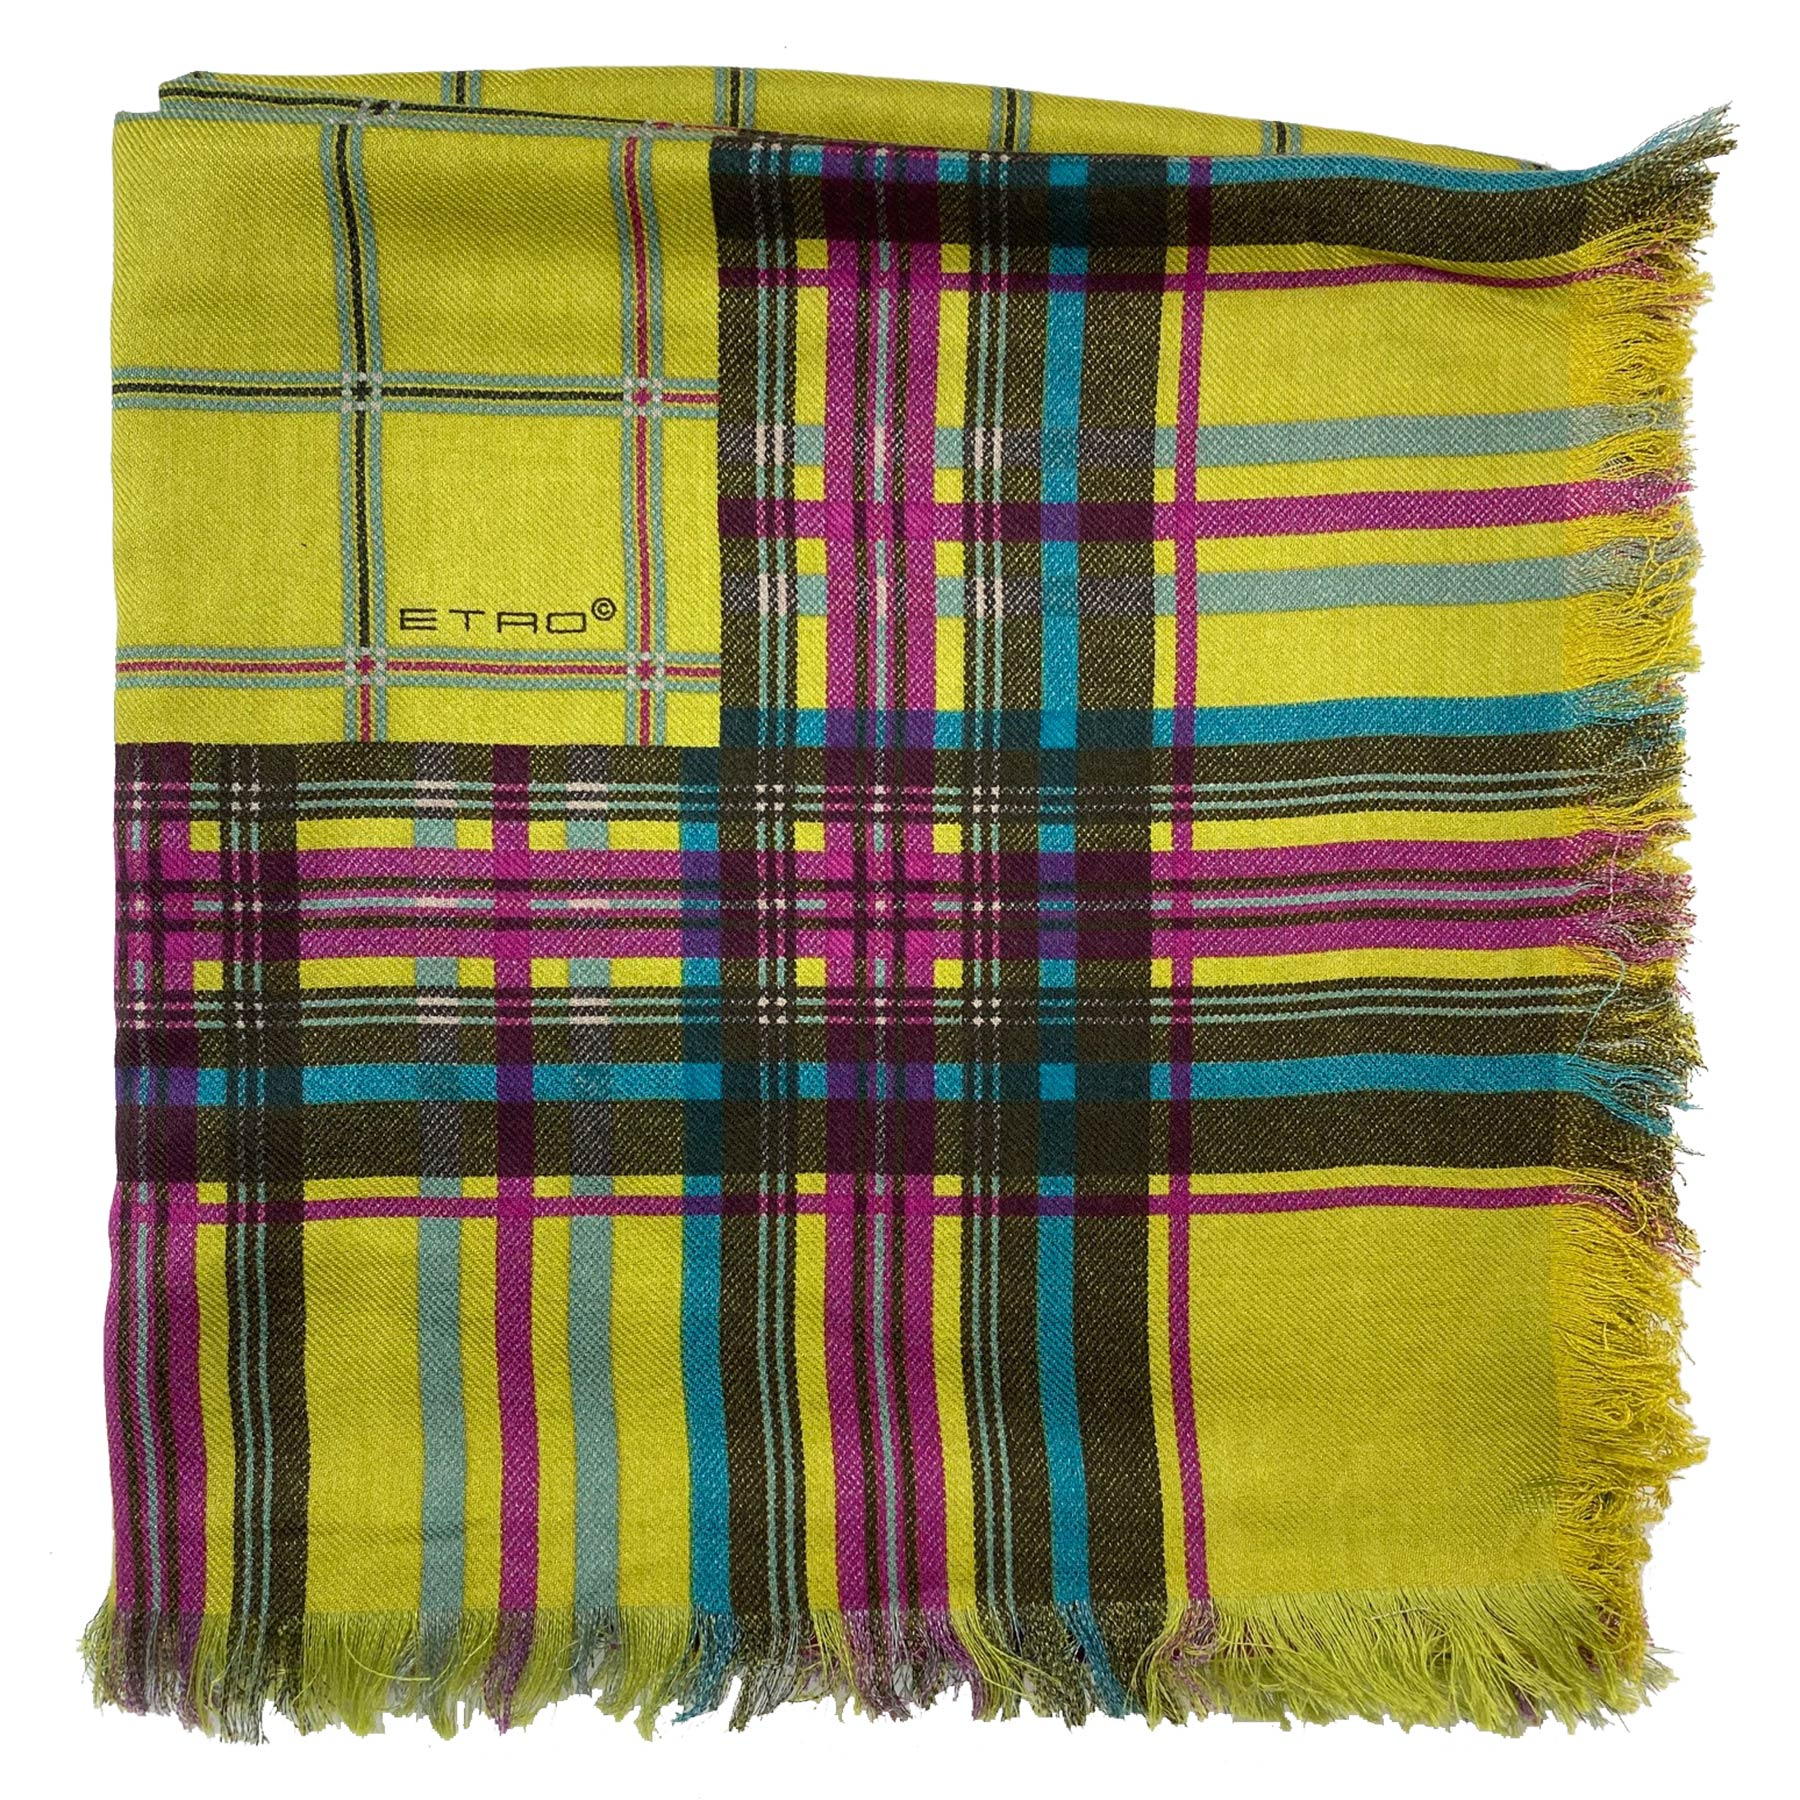 Etro Scarf Olive-Lime  Large Square Wool Silk Wrap